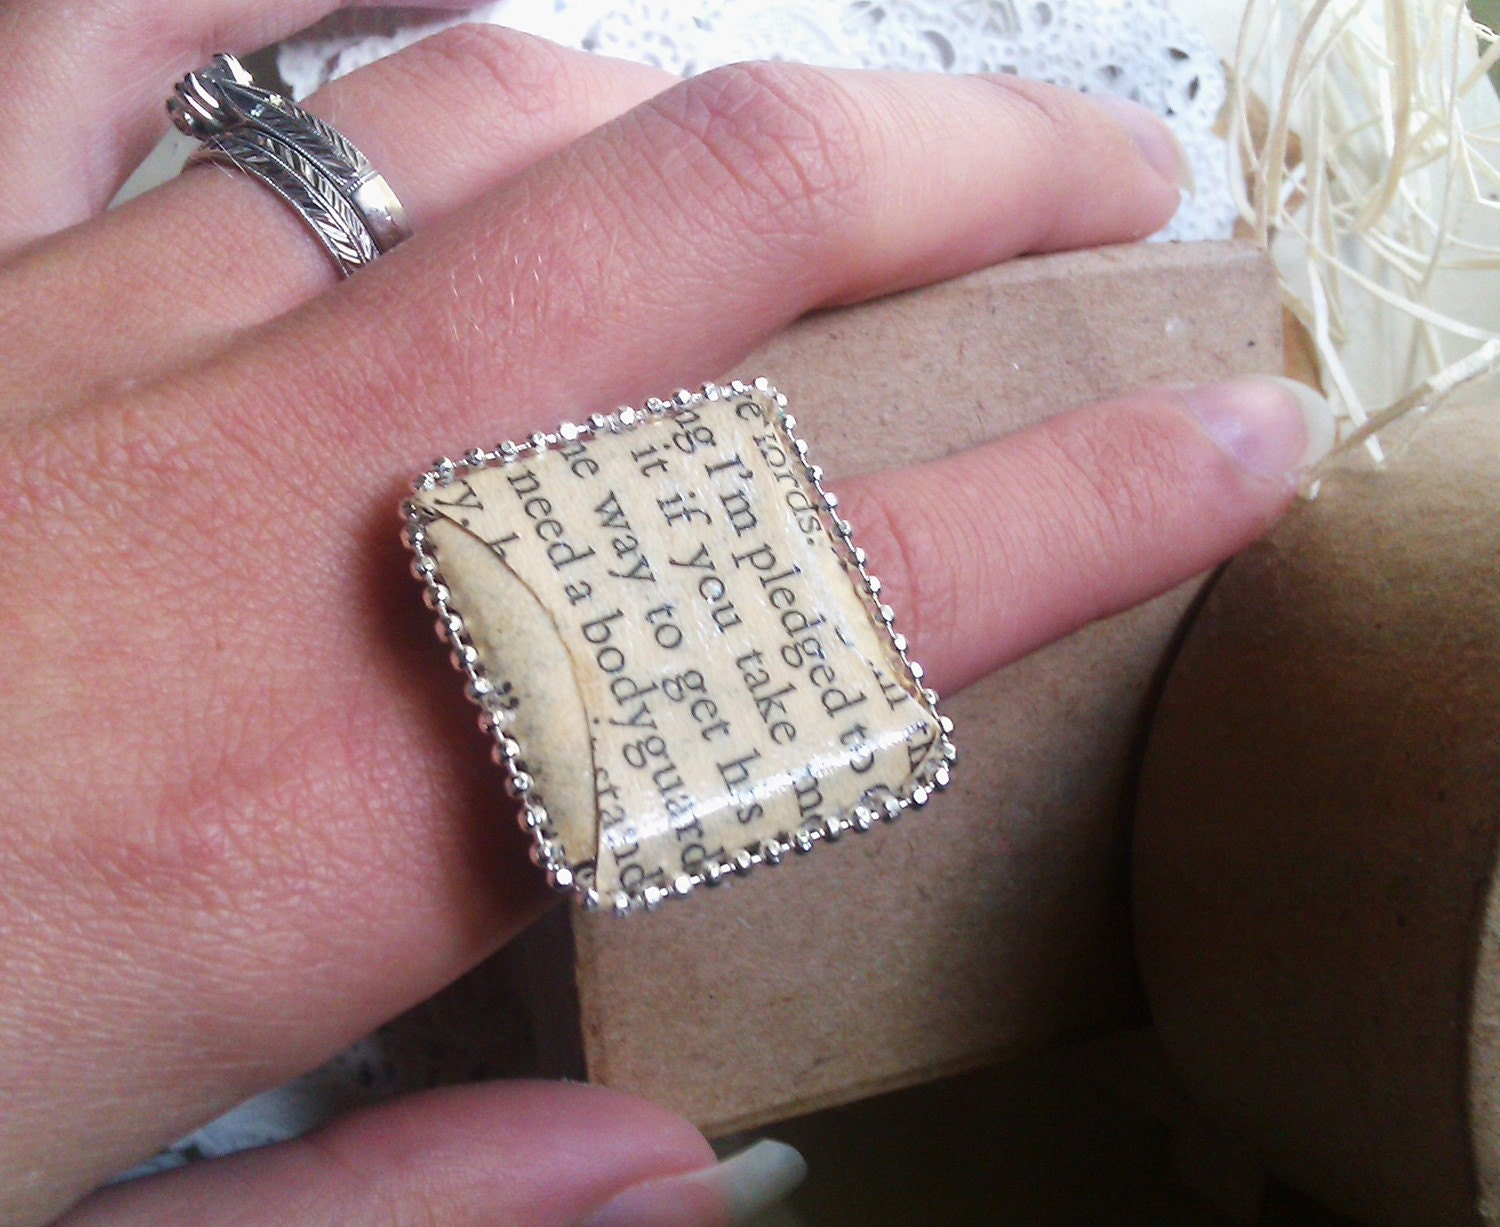 Square romance novel text ring made from folded glazed paper - fully adjustable